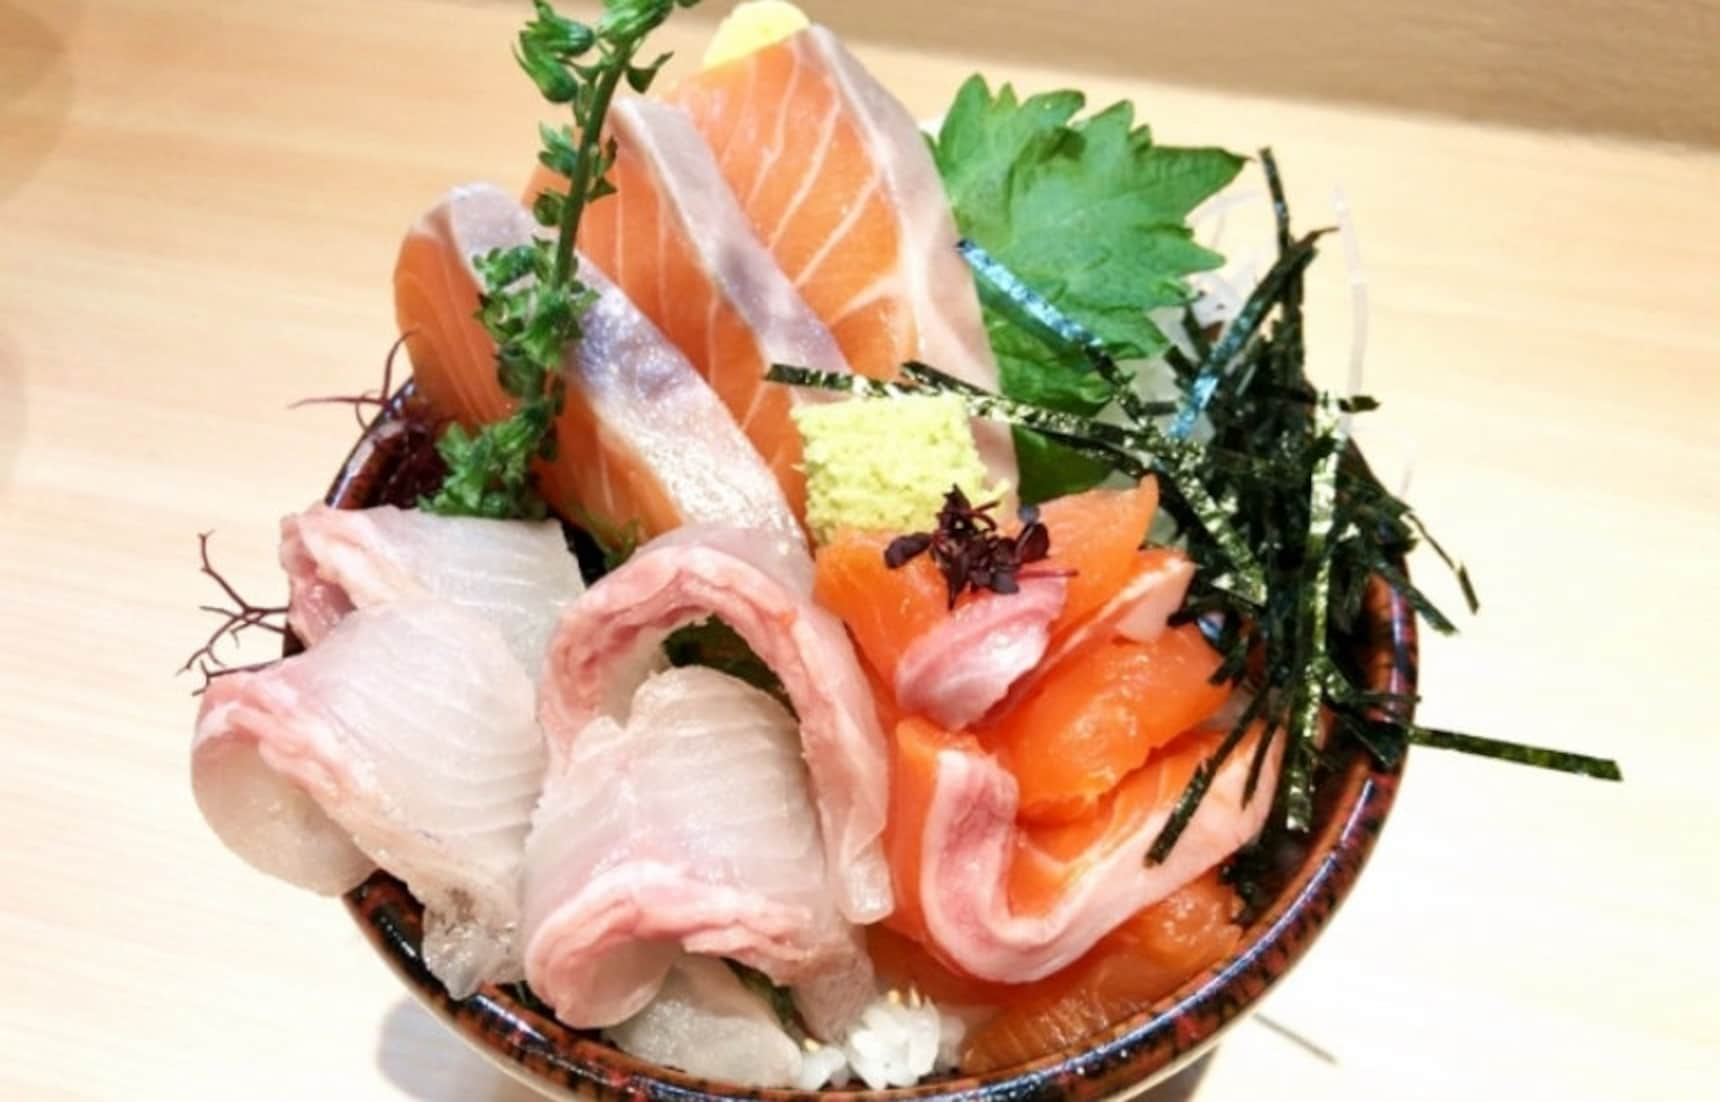 The Perfect Restaurant for Salmon Lovers